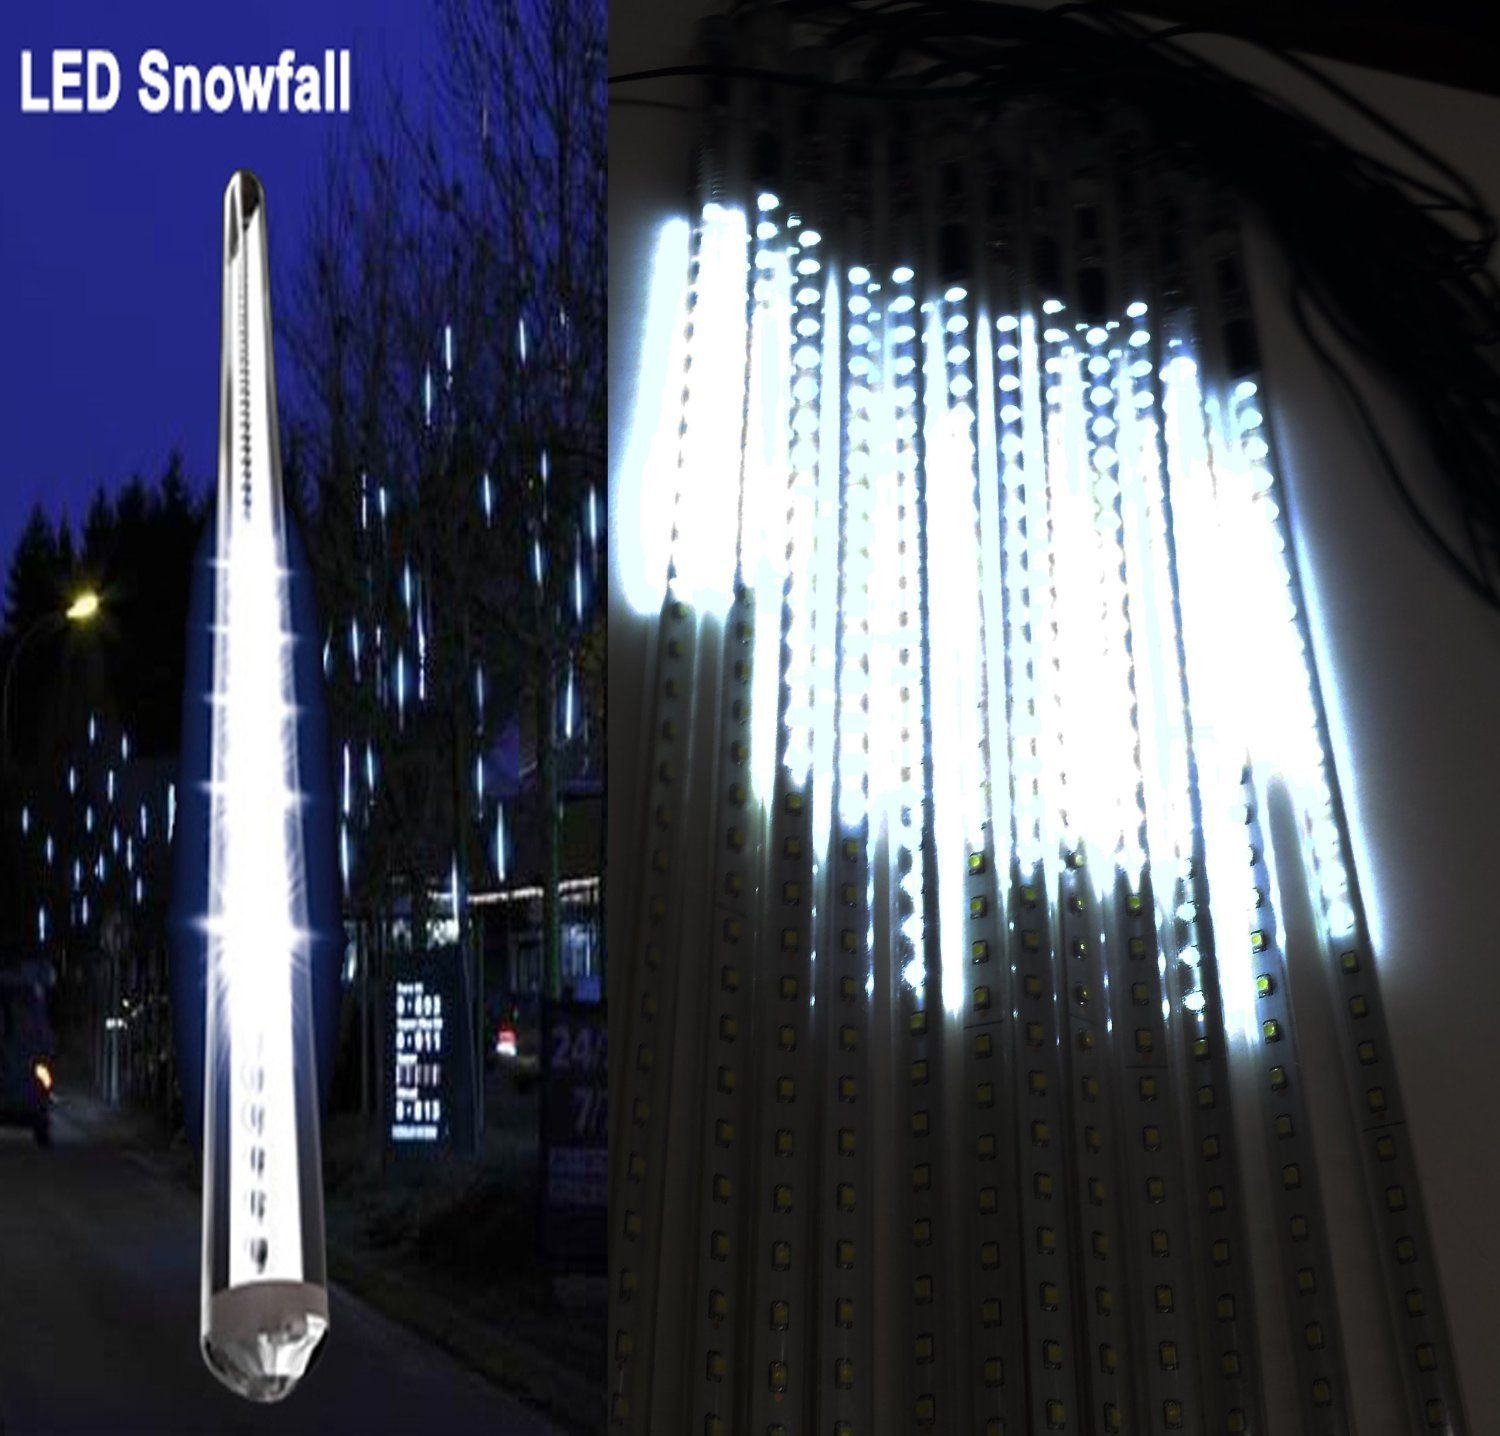 Amazoncom Ledjump Linkable 20 Inch Long Rgbw Multi Colors Led Wire Diagram Snowfall Meteor Shower Lights 16ft Extension Set Of 12 Waterproof Transformer